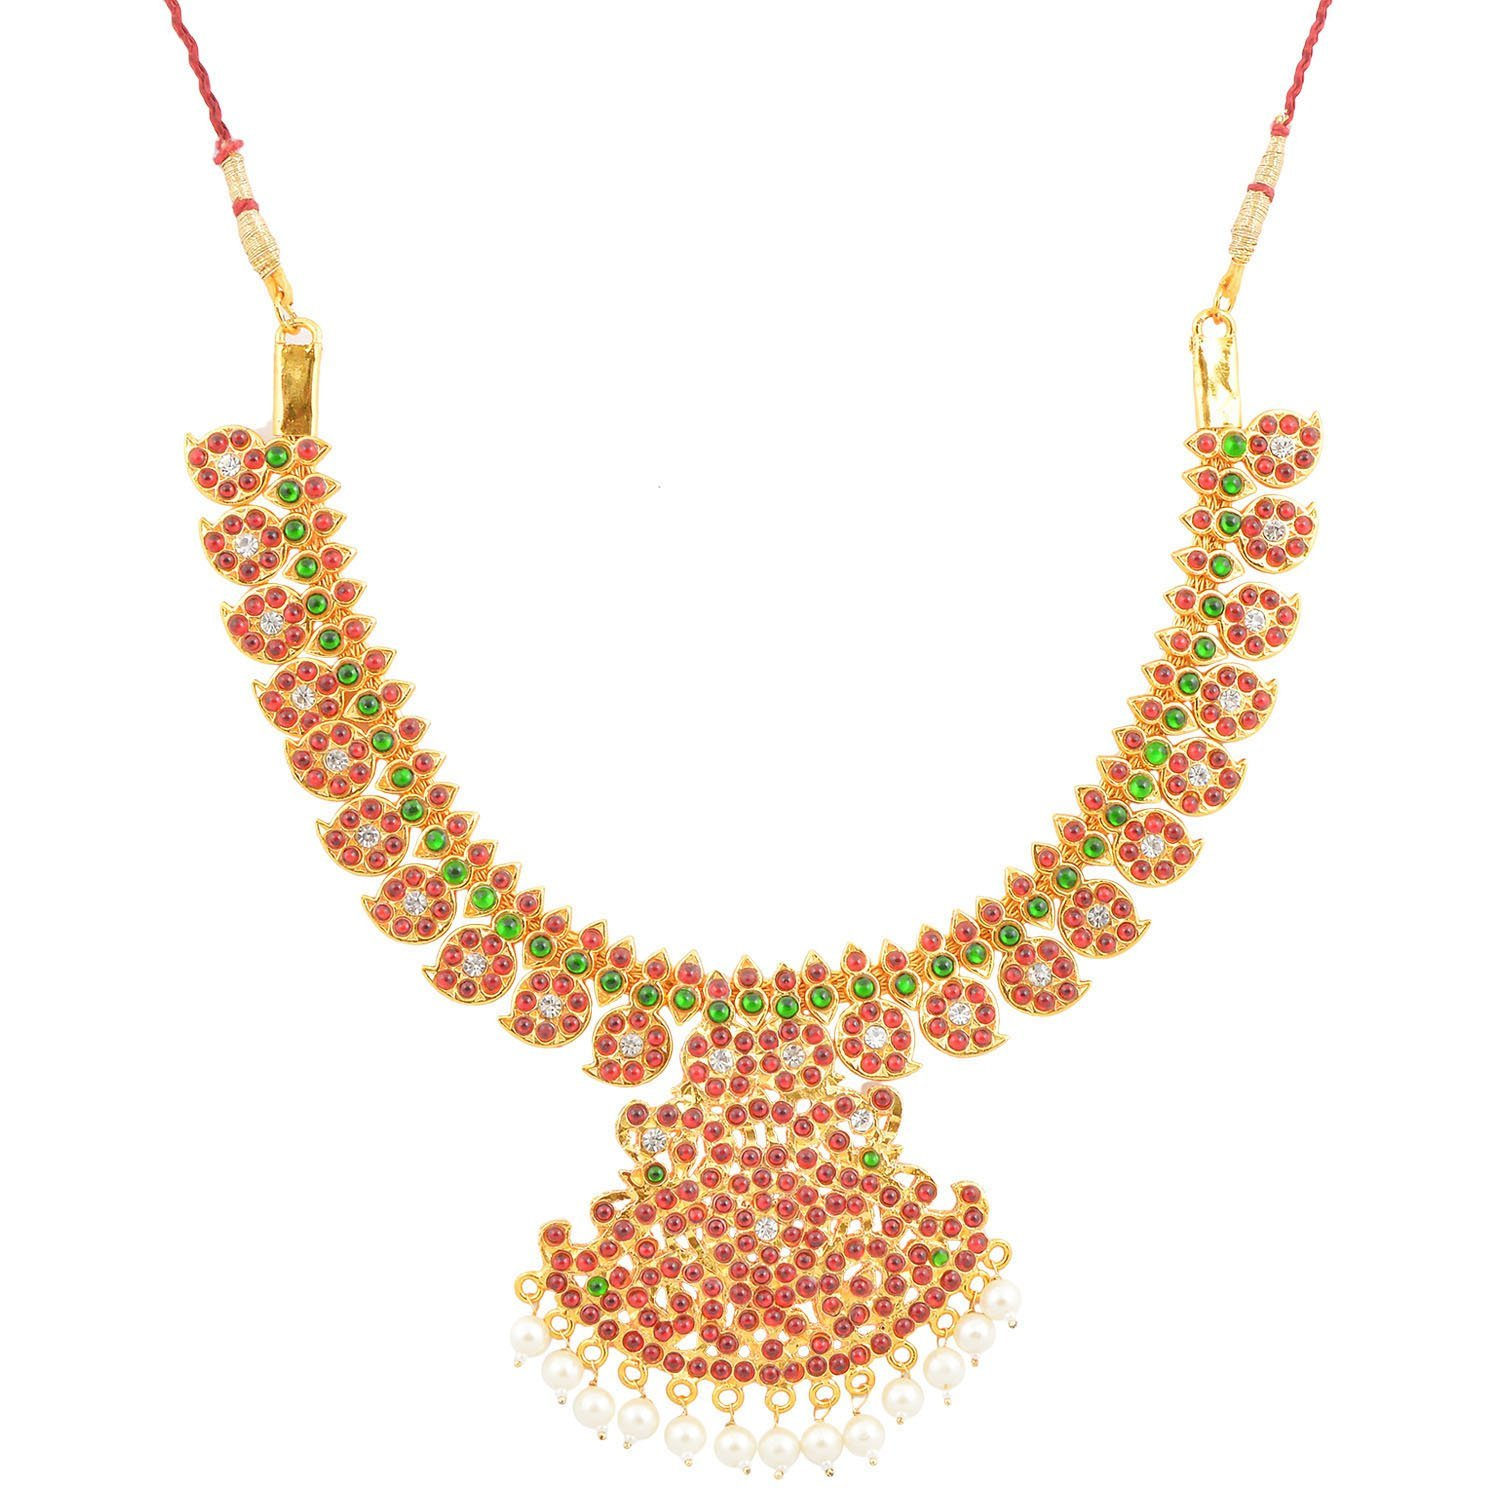 jewellers shringara necklace chains baby gold shopping online abiraame home jewellery your